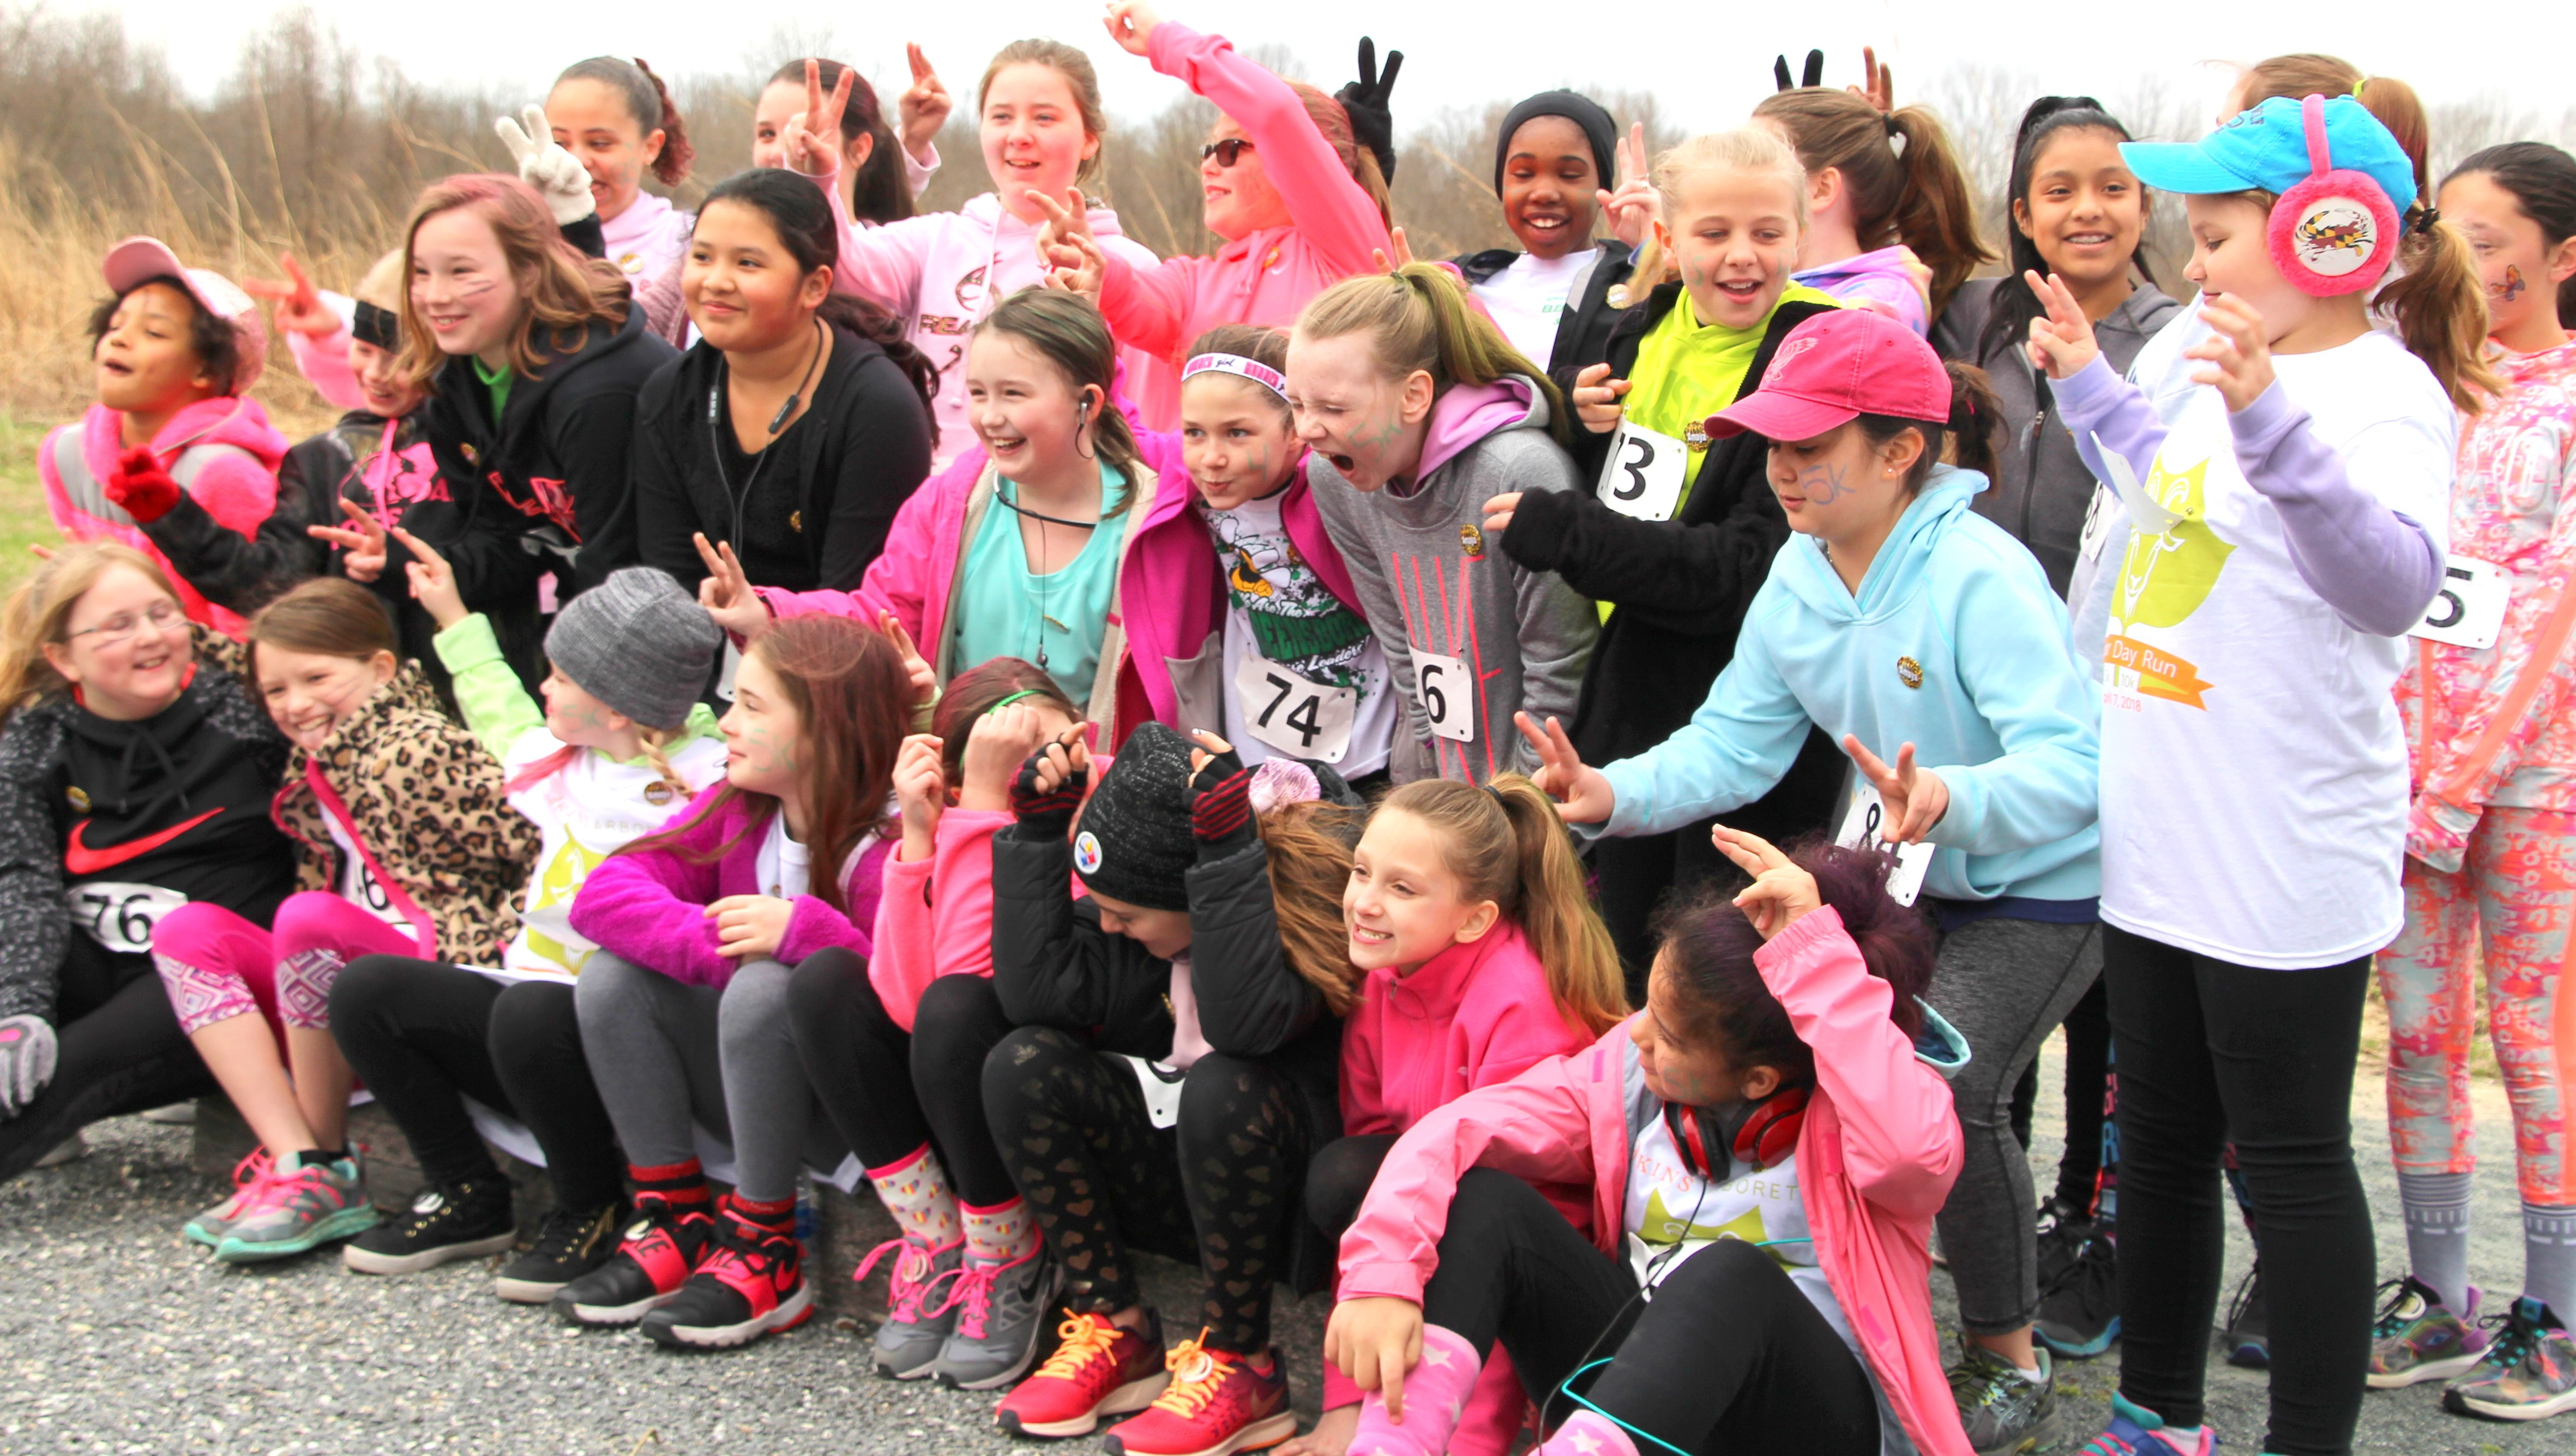 Hustle for the Herd April 6 at Adkins Arboretum's Arbor Day Run